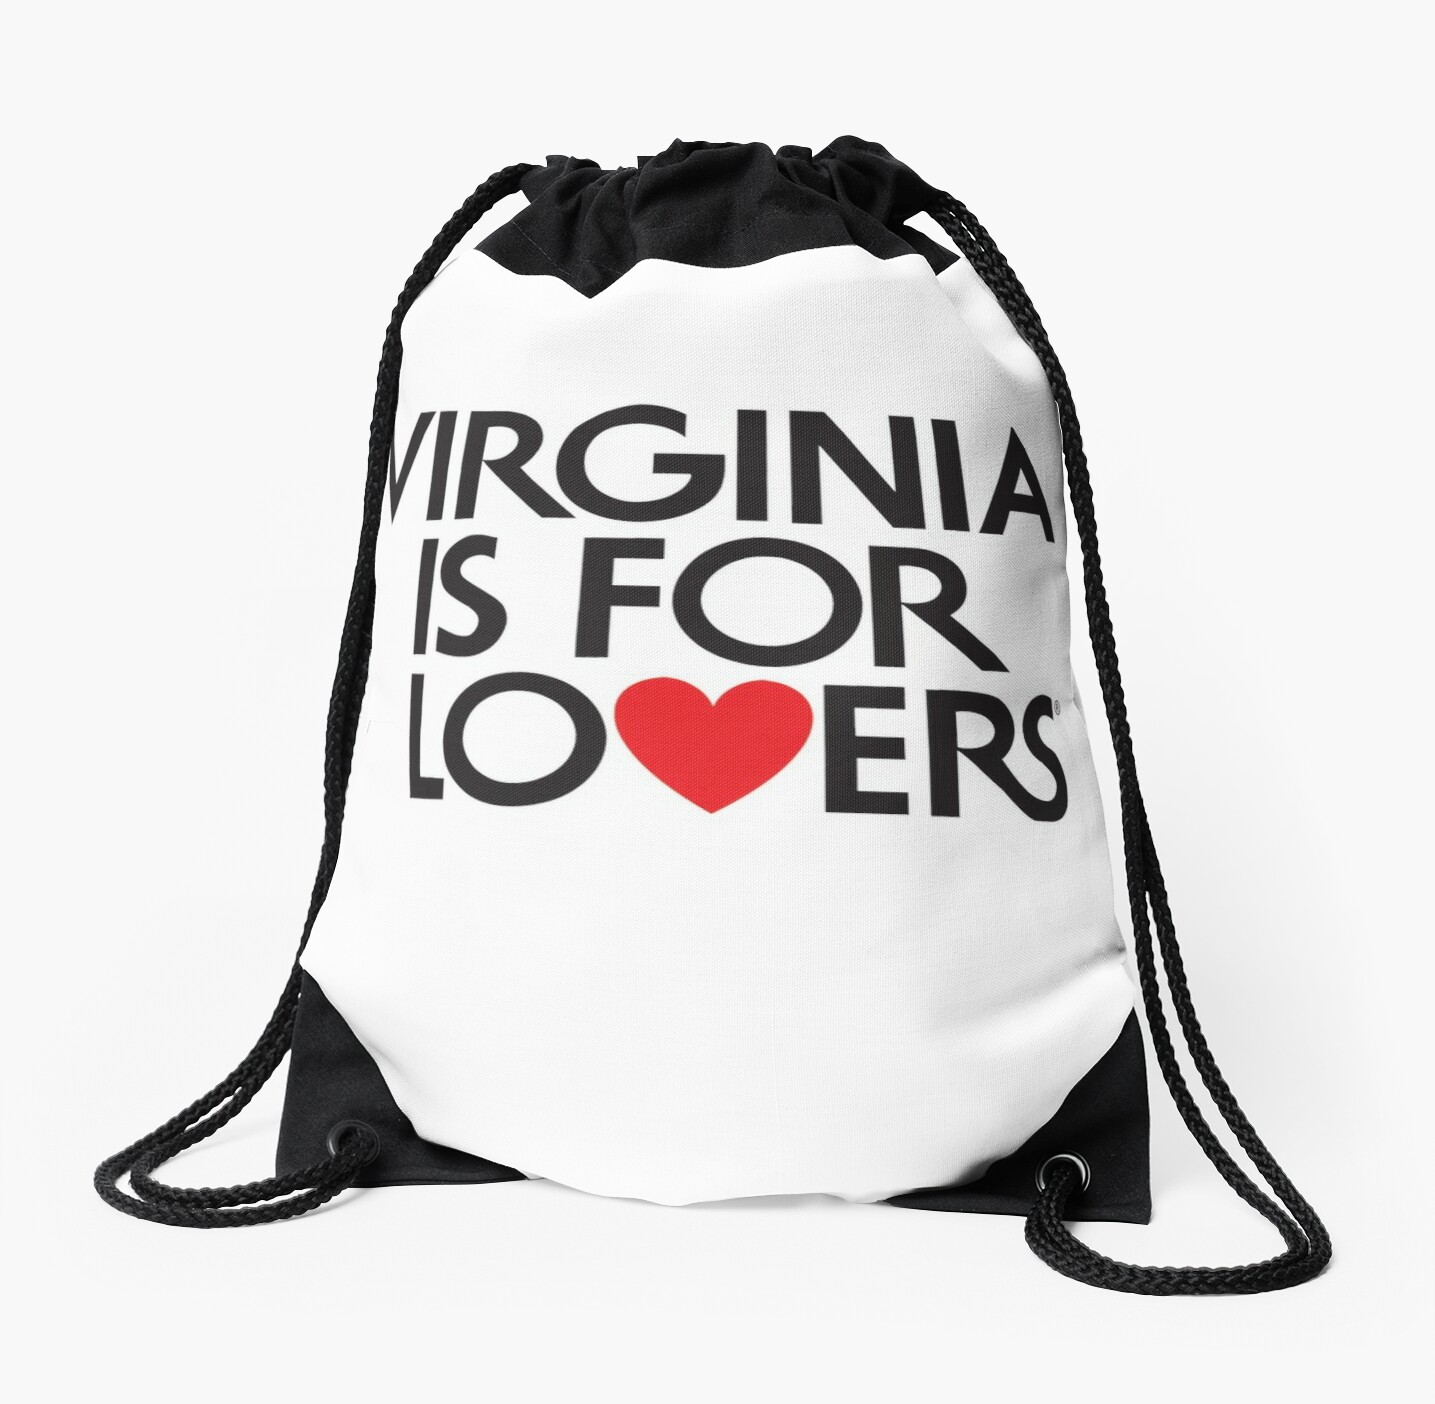 \'Official Virginia Is For Lovers Logo\' Drawstring Bag by Grampus.